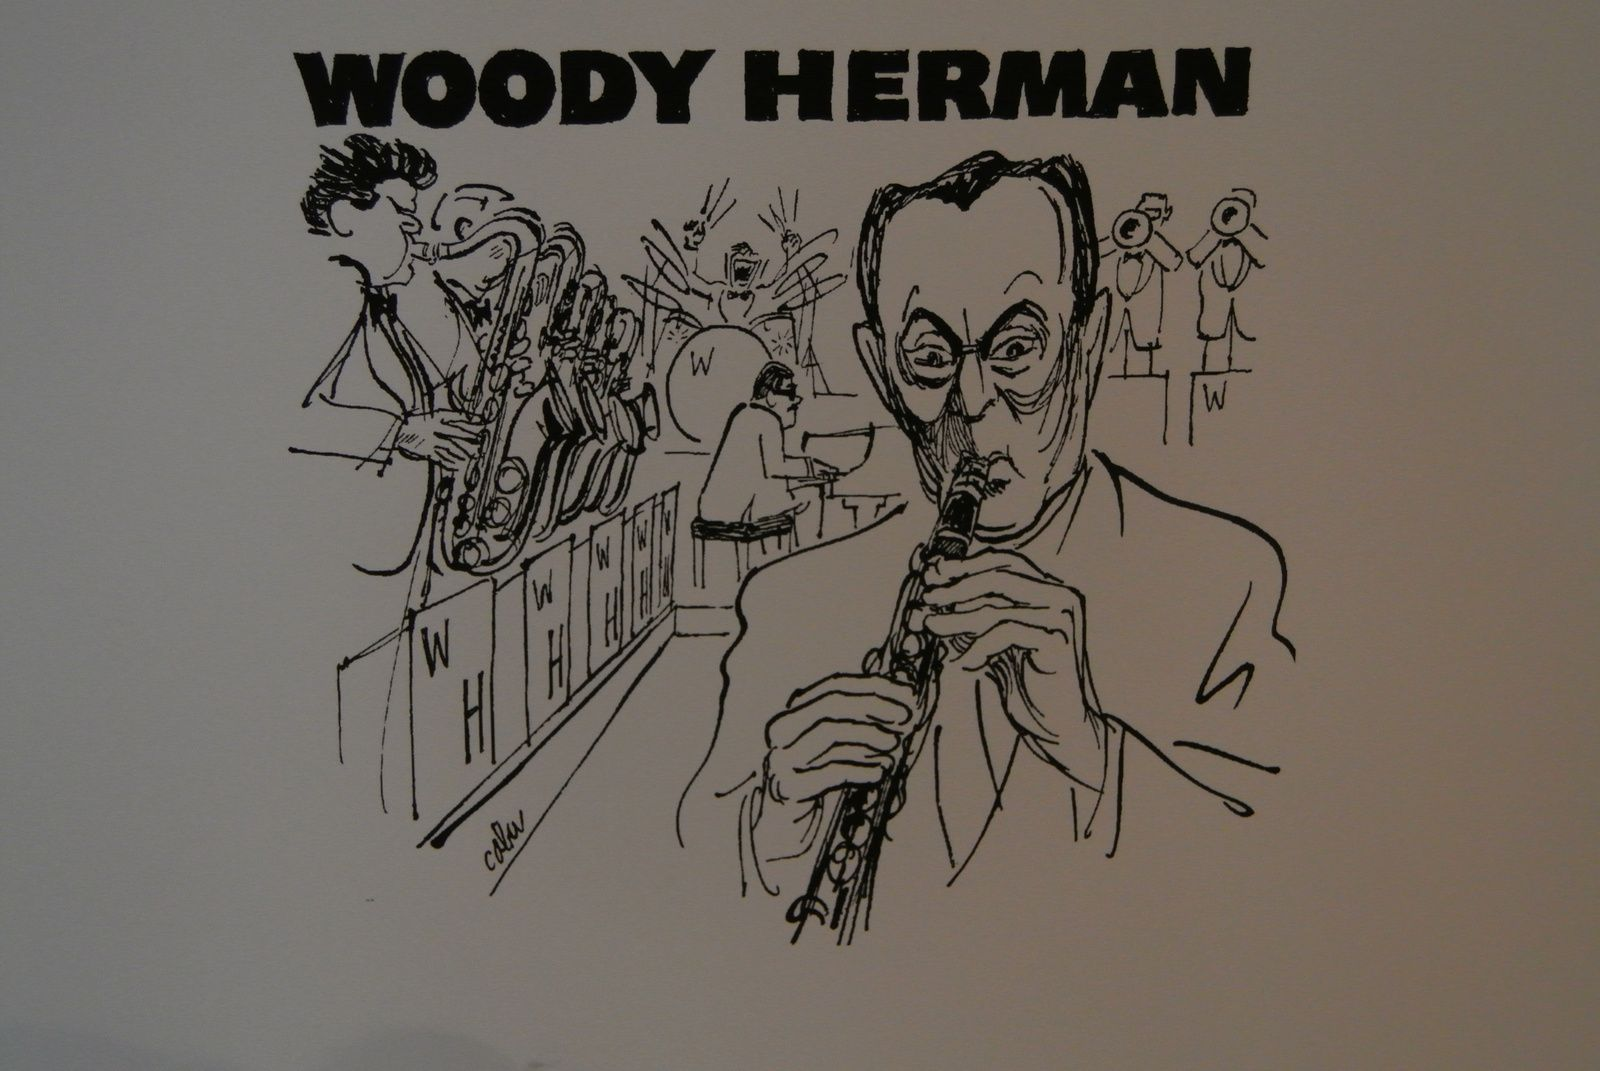 WOODY HERMAN SELON CABU